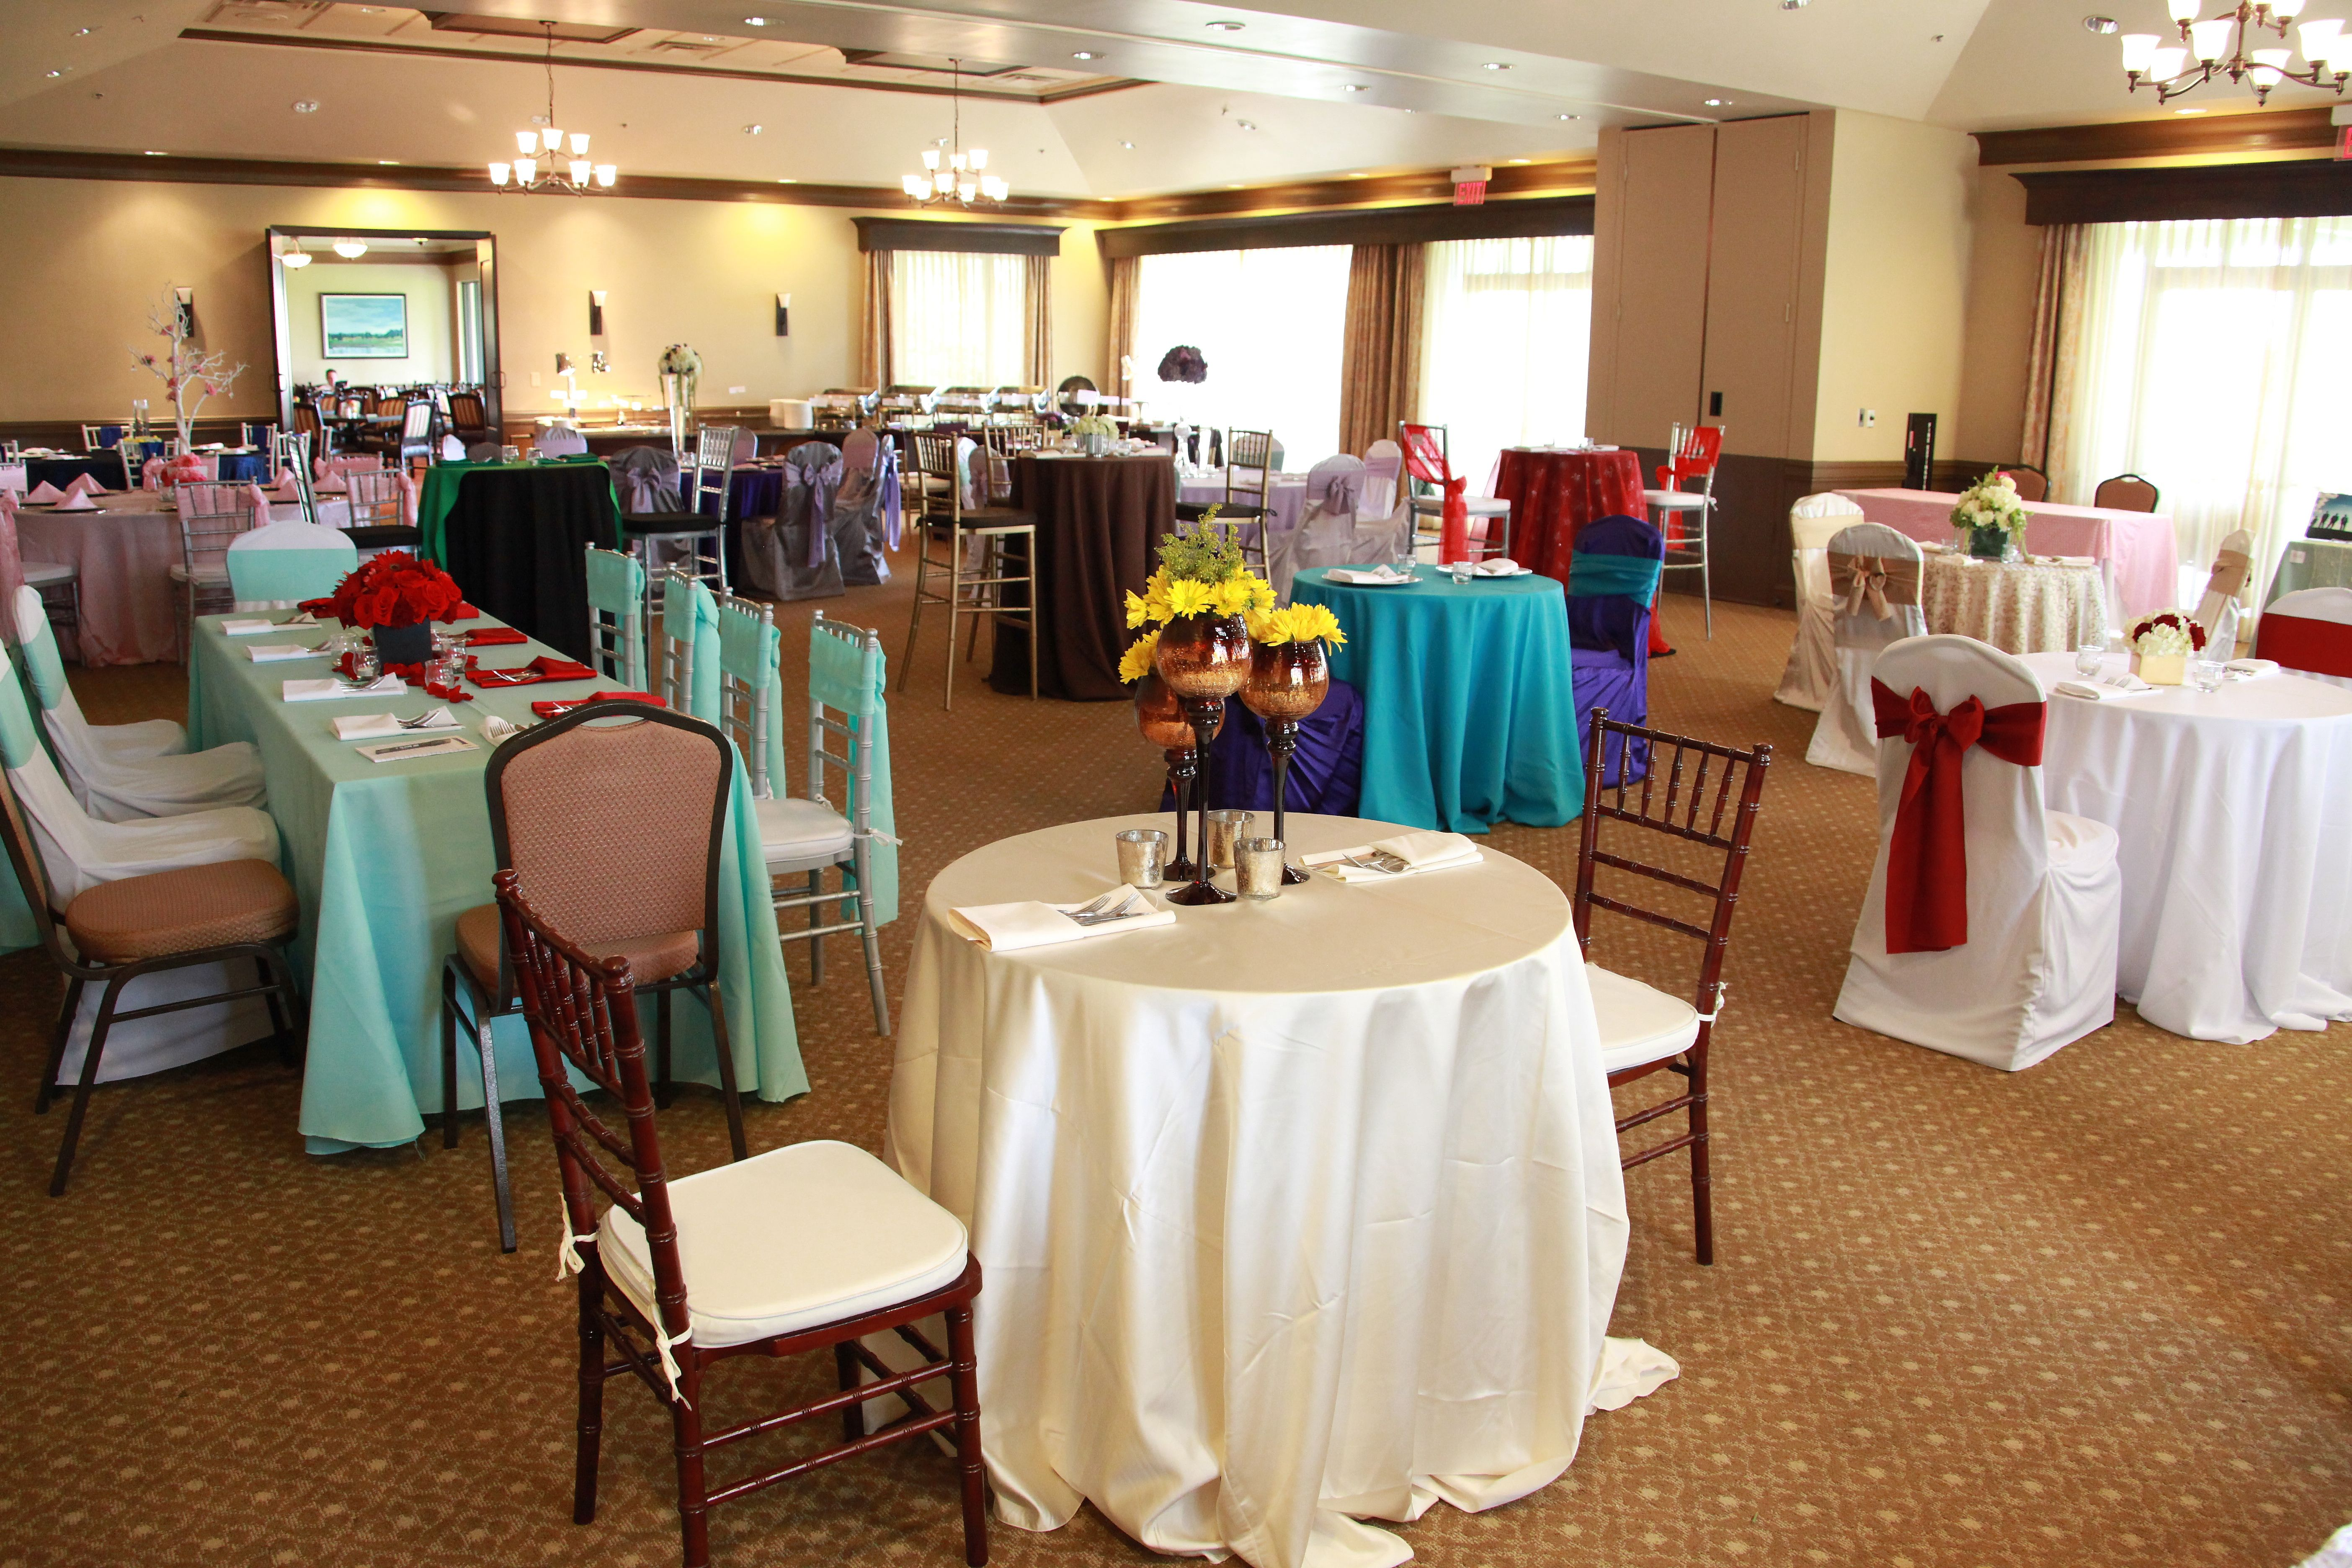 Attend a group tasting to see design inspiration, try our food, and meet our favorite vendors! Call Falcon's Fire to reserve your spot at the next tasting! Falcon's Fire Golf Club 407-390-0982